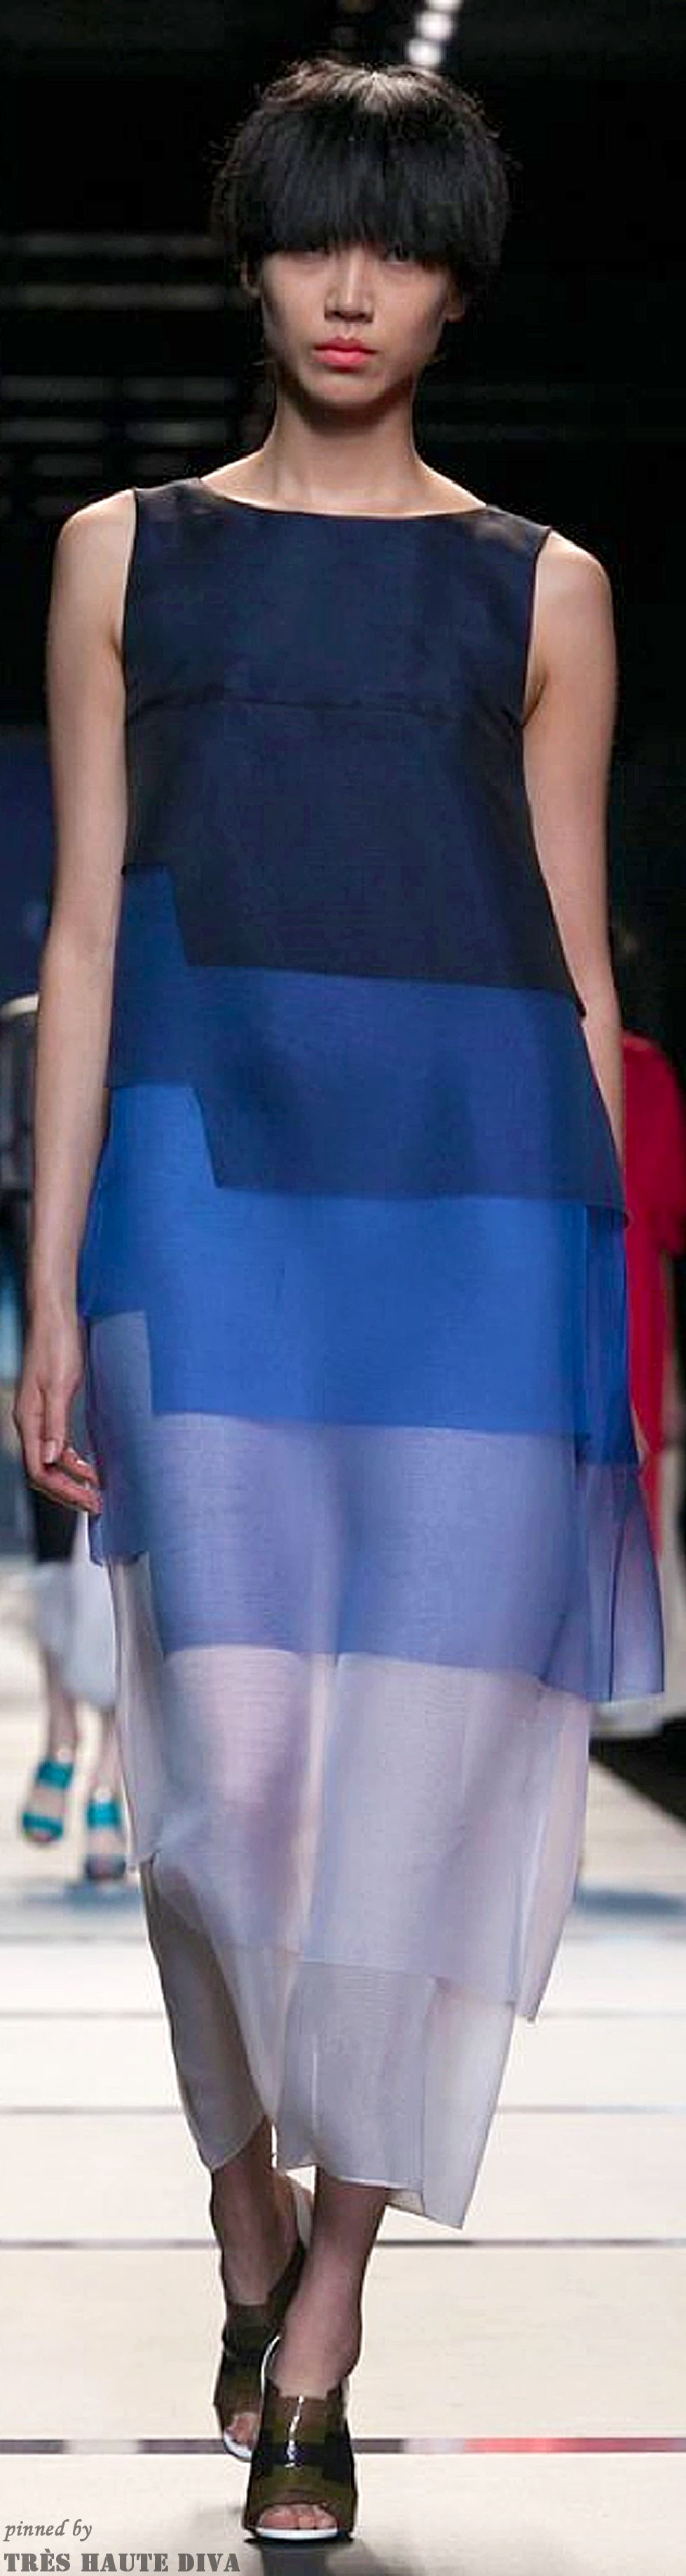 Milan FW Fendi Spring 2014 RTW  | The House of Beccaria #